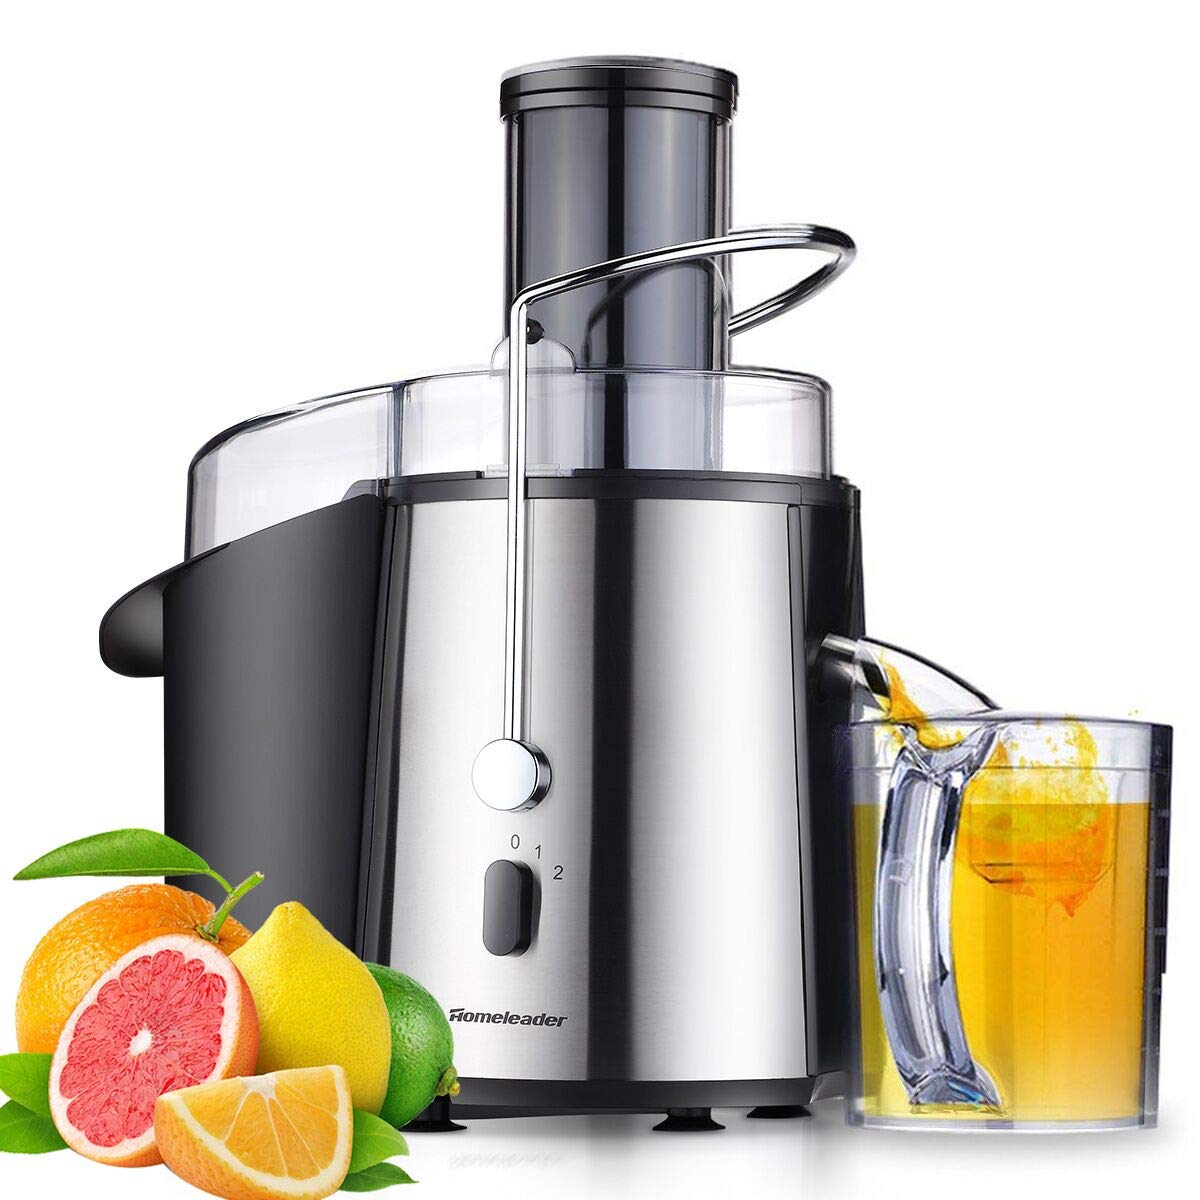 Homeleader Juicer Juice Extractor Wide Mouth Centrifugal Juicer,2 Speed Juicer Machine for Fruits and Vegetable,Stainless Steel,700 Watt K17-001